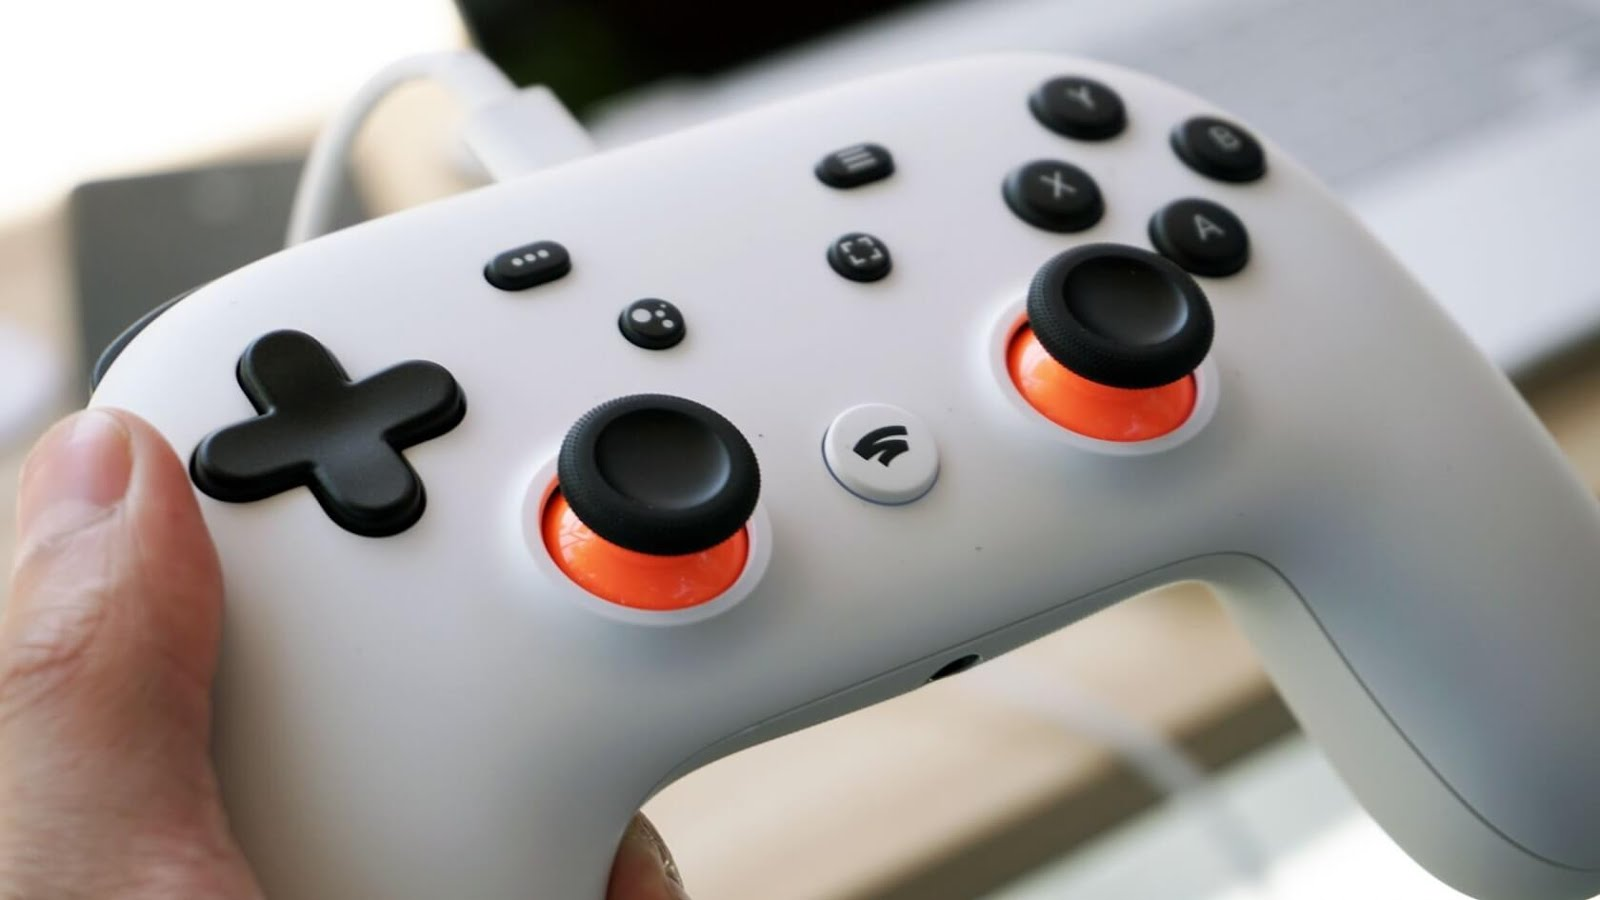 Google Stadia Launch, Price and Game info coming out soon